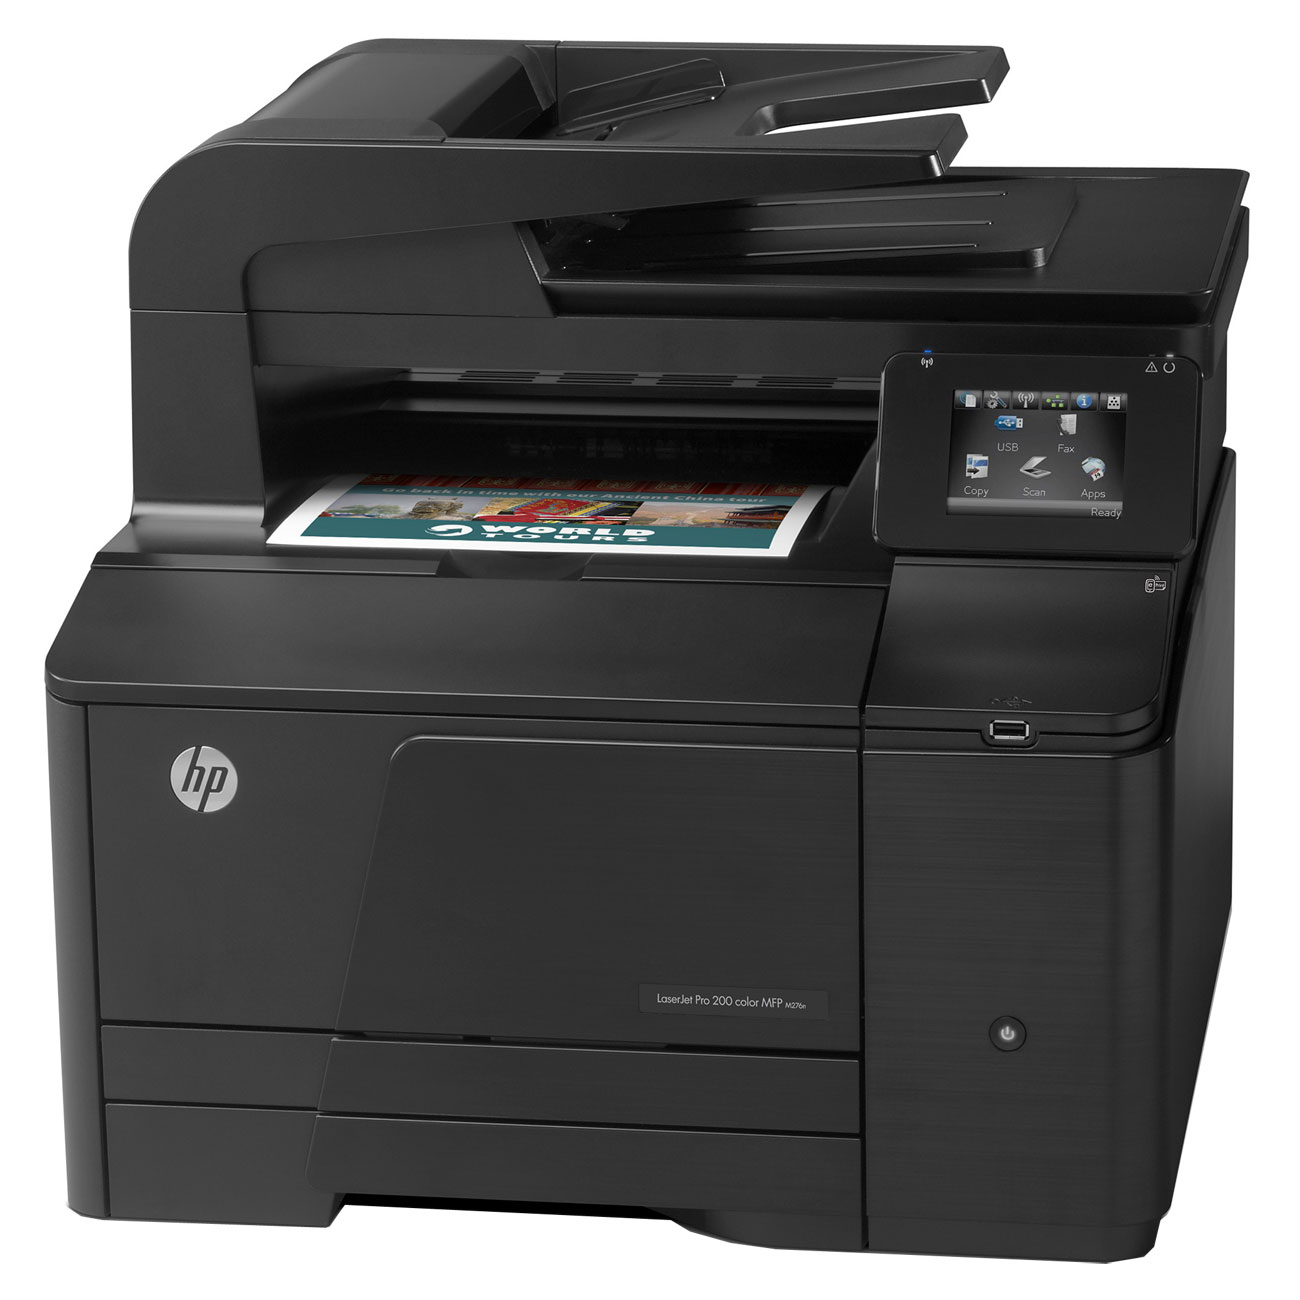 hp laserjet pro 200 color mfp m276n cf144a imprimante multifonction hp sur. Black Bedroom Furniture Sets. Home Design Ideas